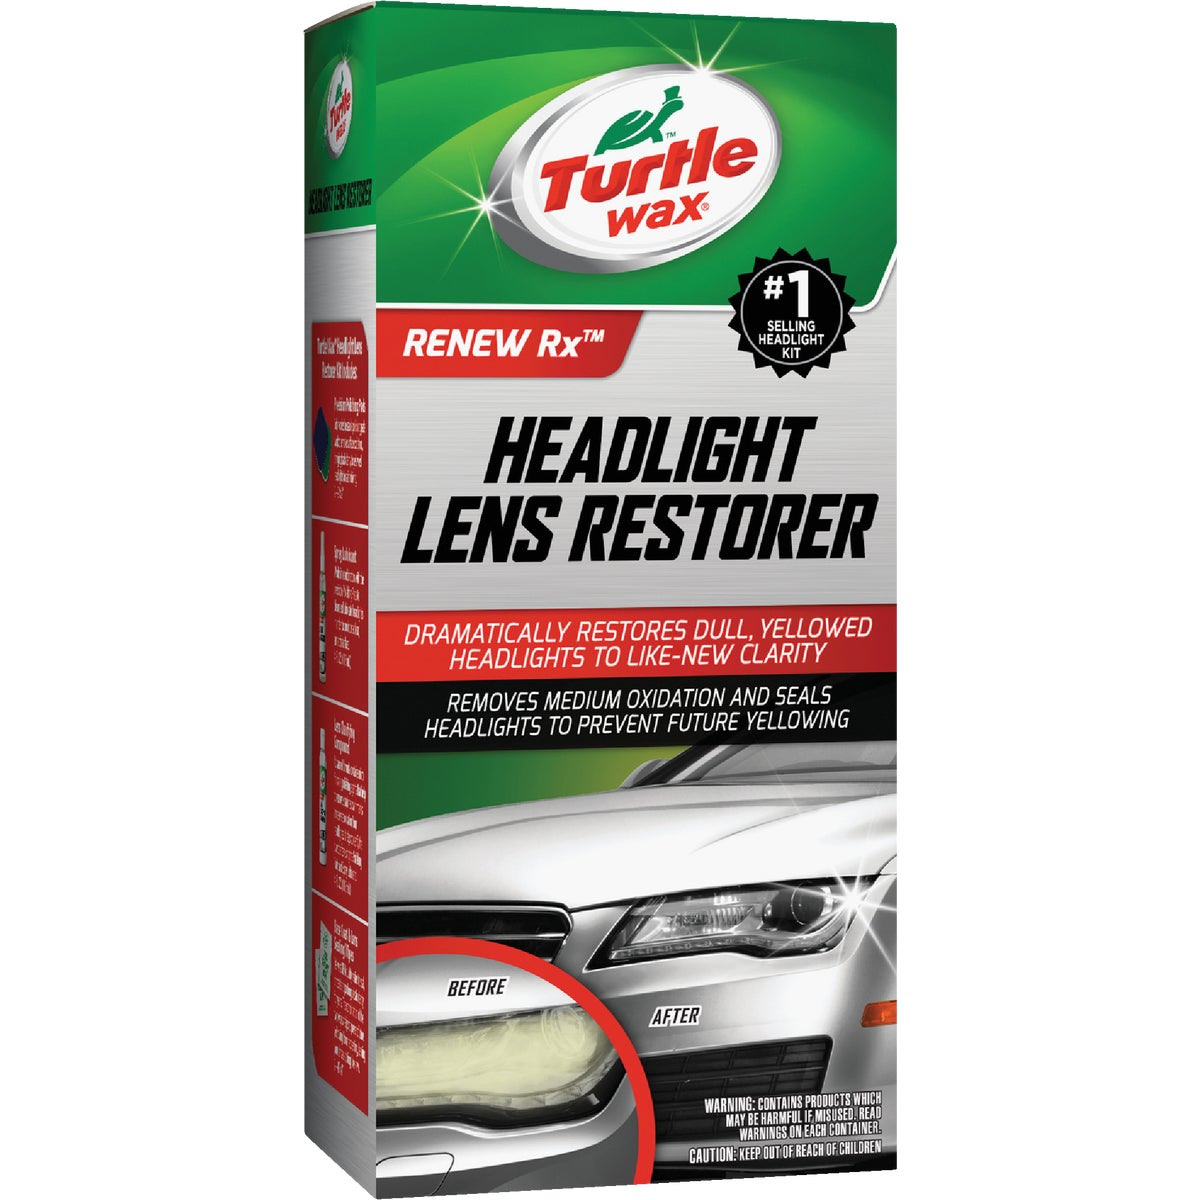 HEADLIGHT LENS RESTORER - T240KT by Turtle Wax Inc